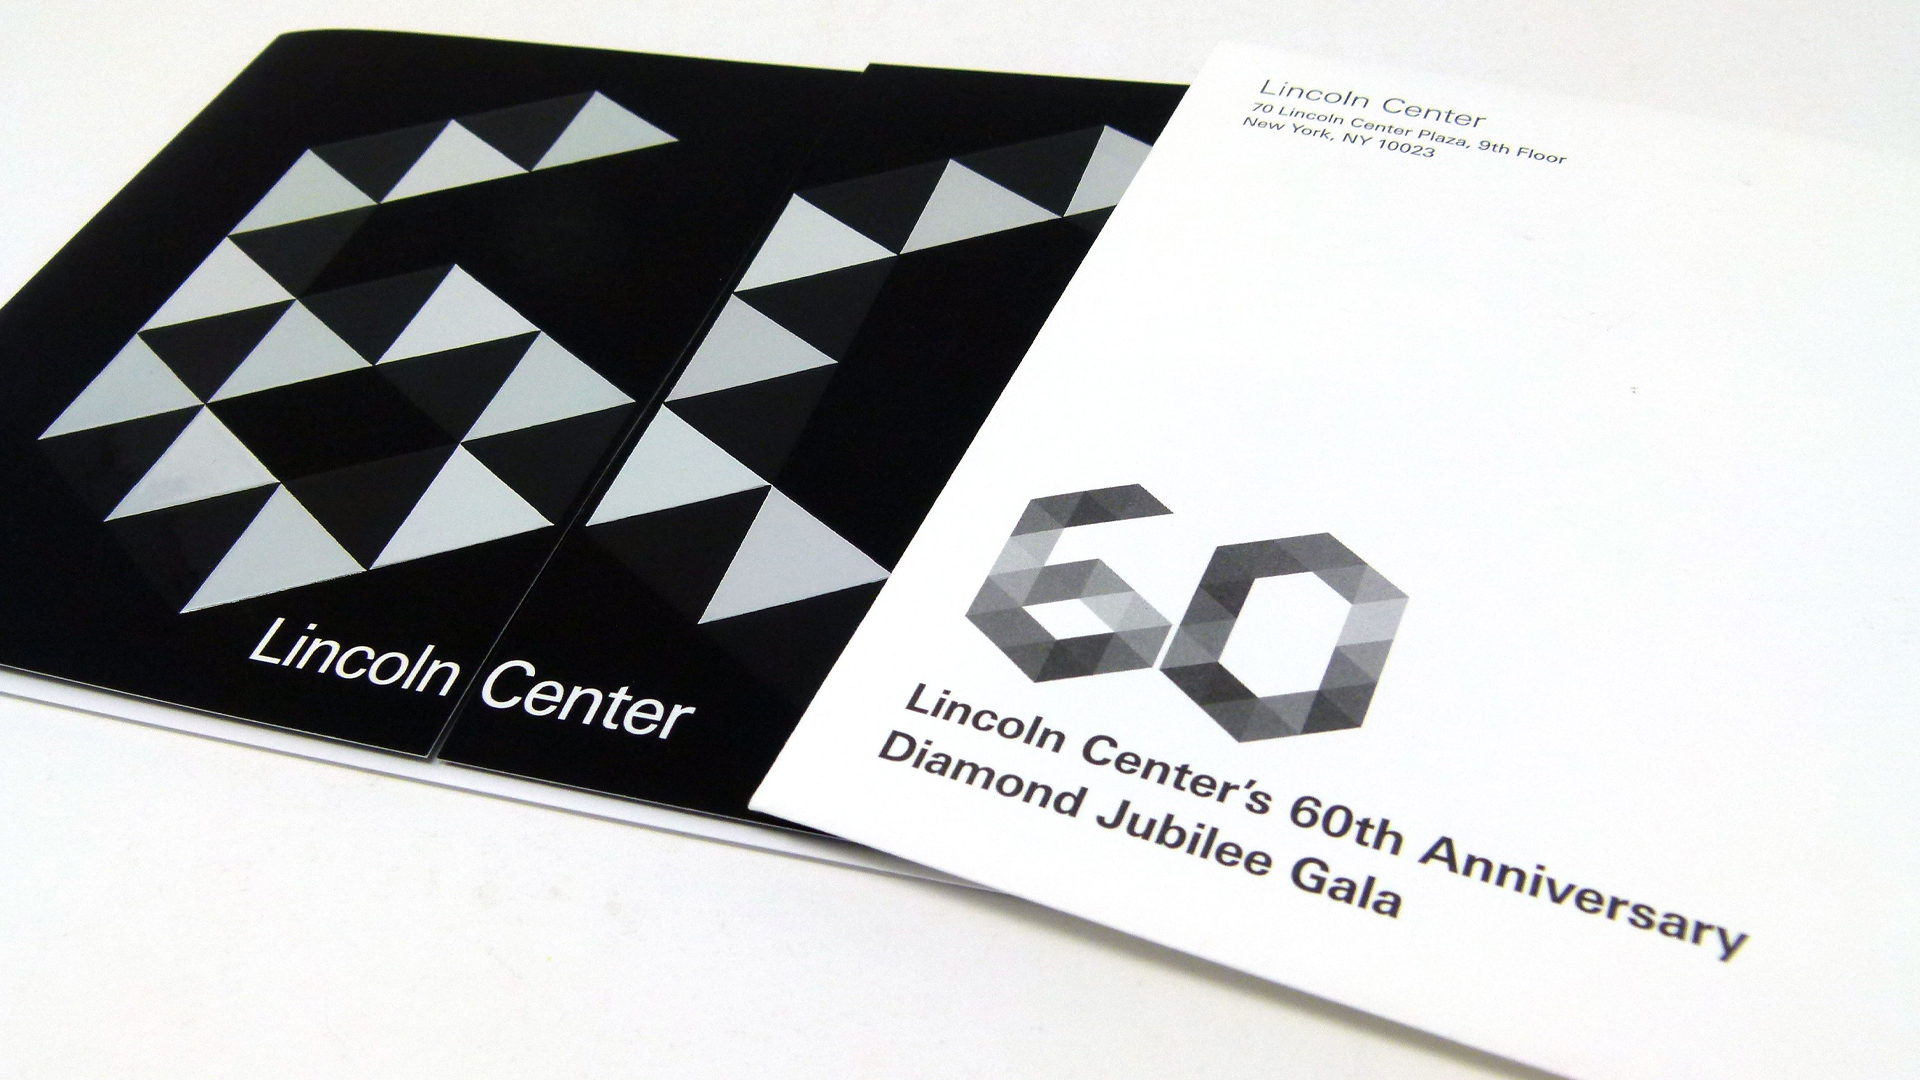 Lincoln Center 60th Anniversary Gala - PaperSpecs